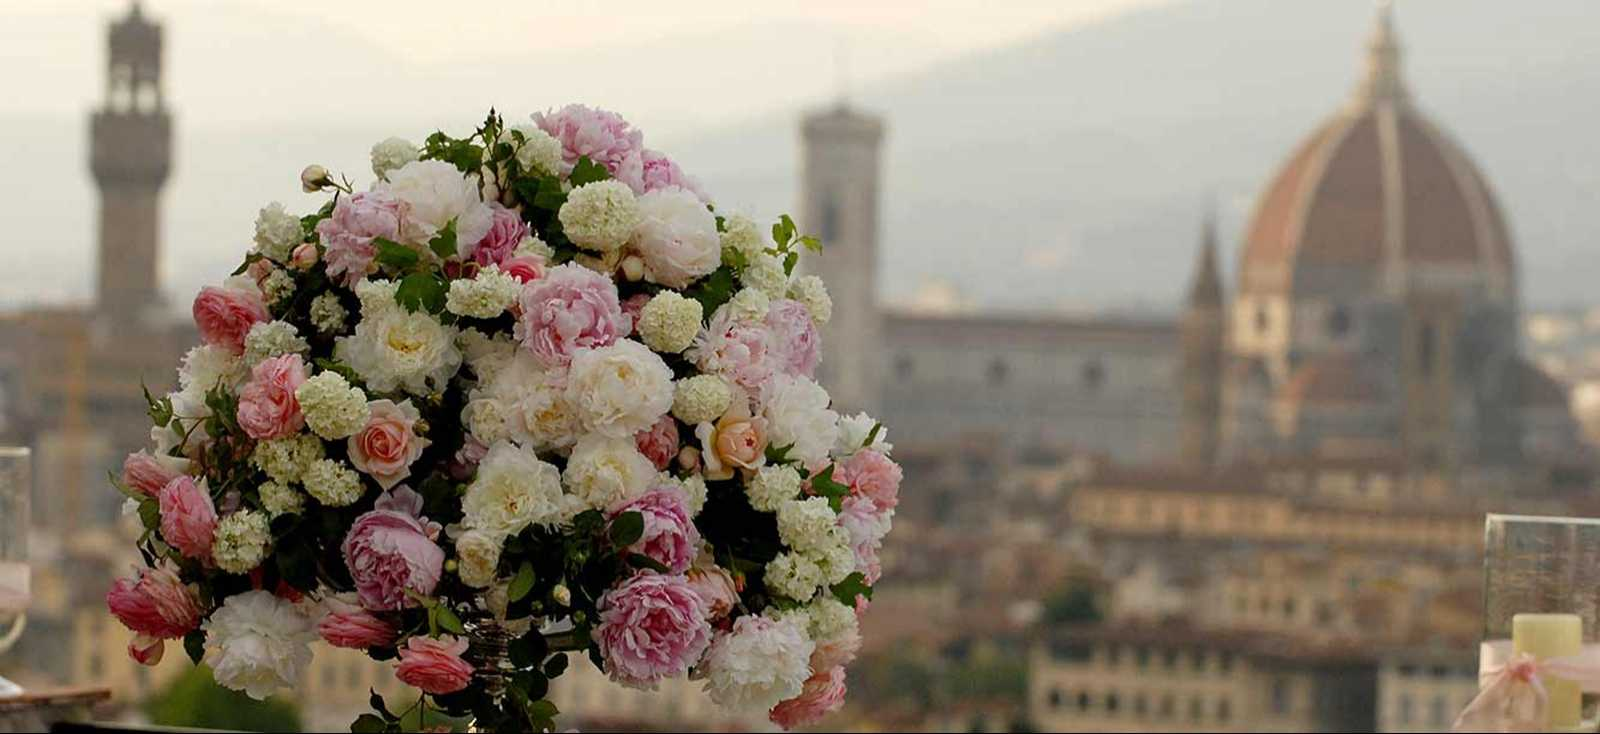 Wedding Flowers In Tuscany